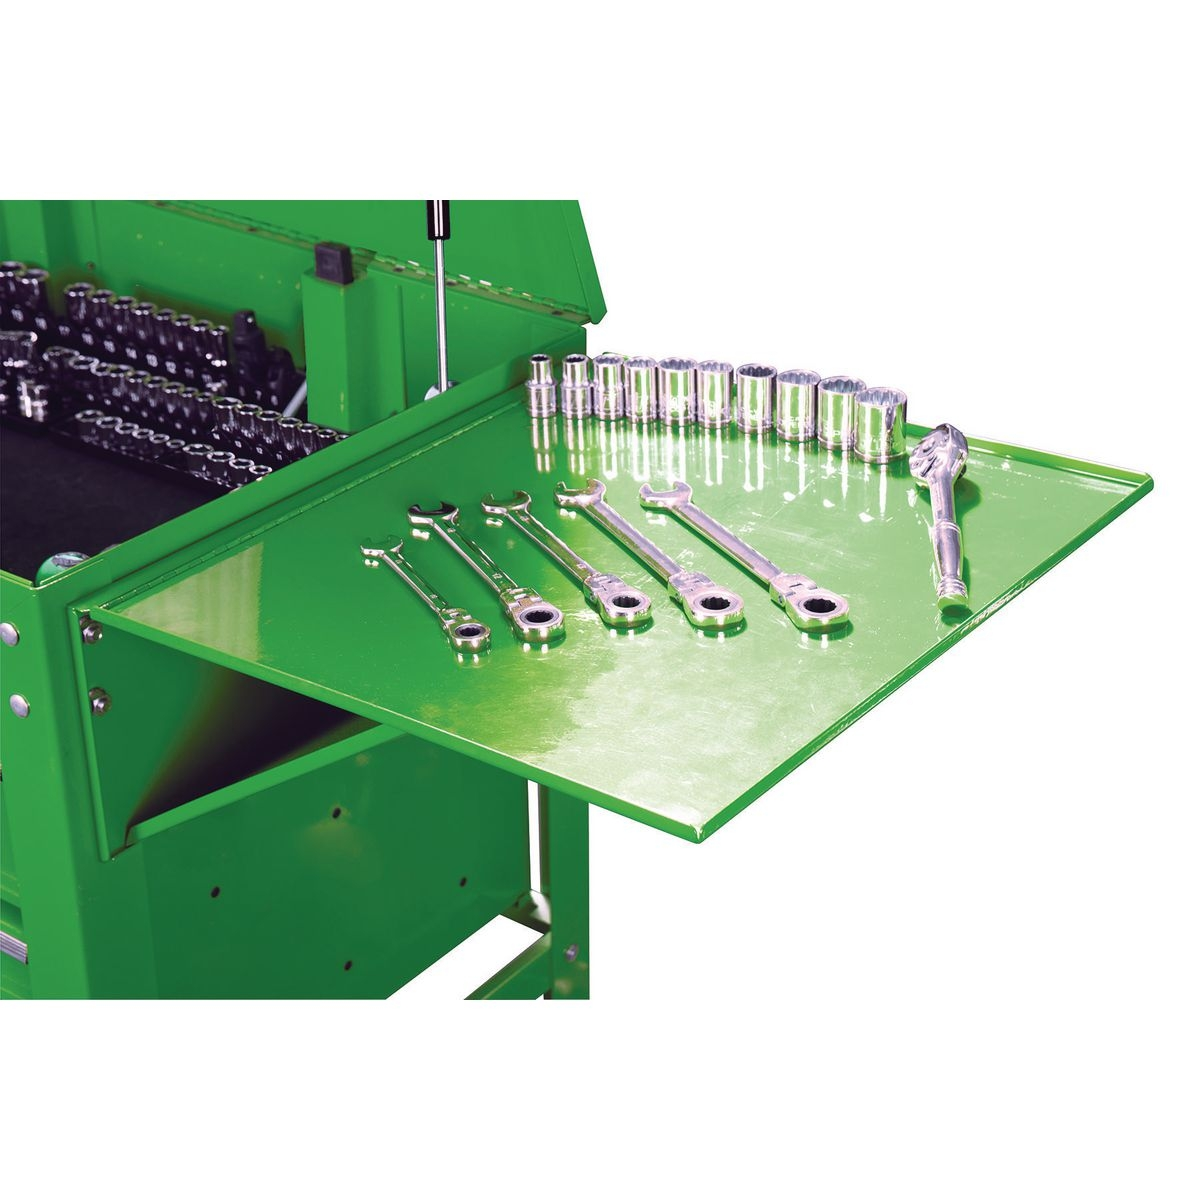 U.S. GENERAL Folding Side Tray for Green Tool Cart - Item 64725